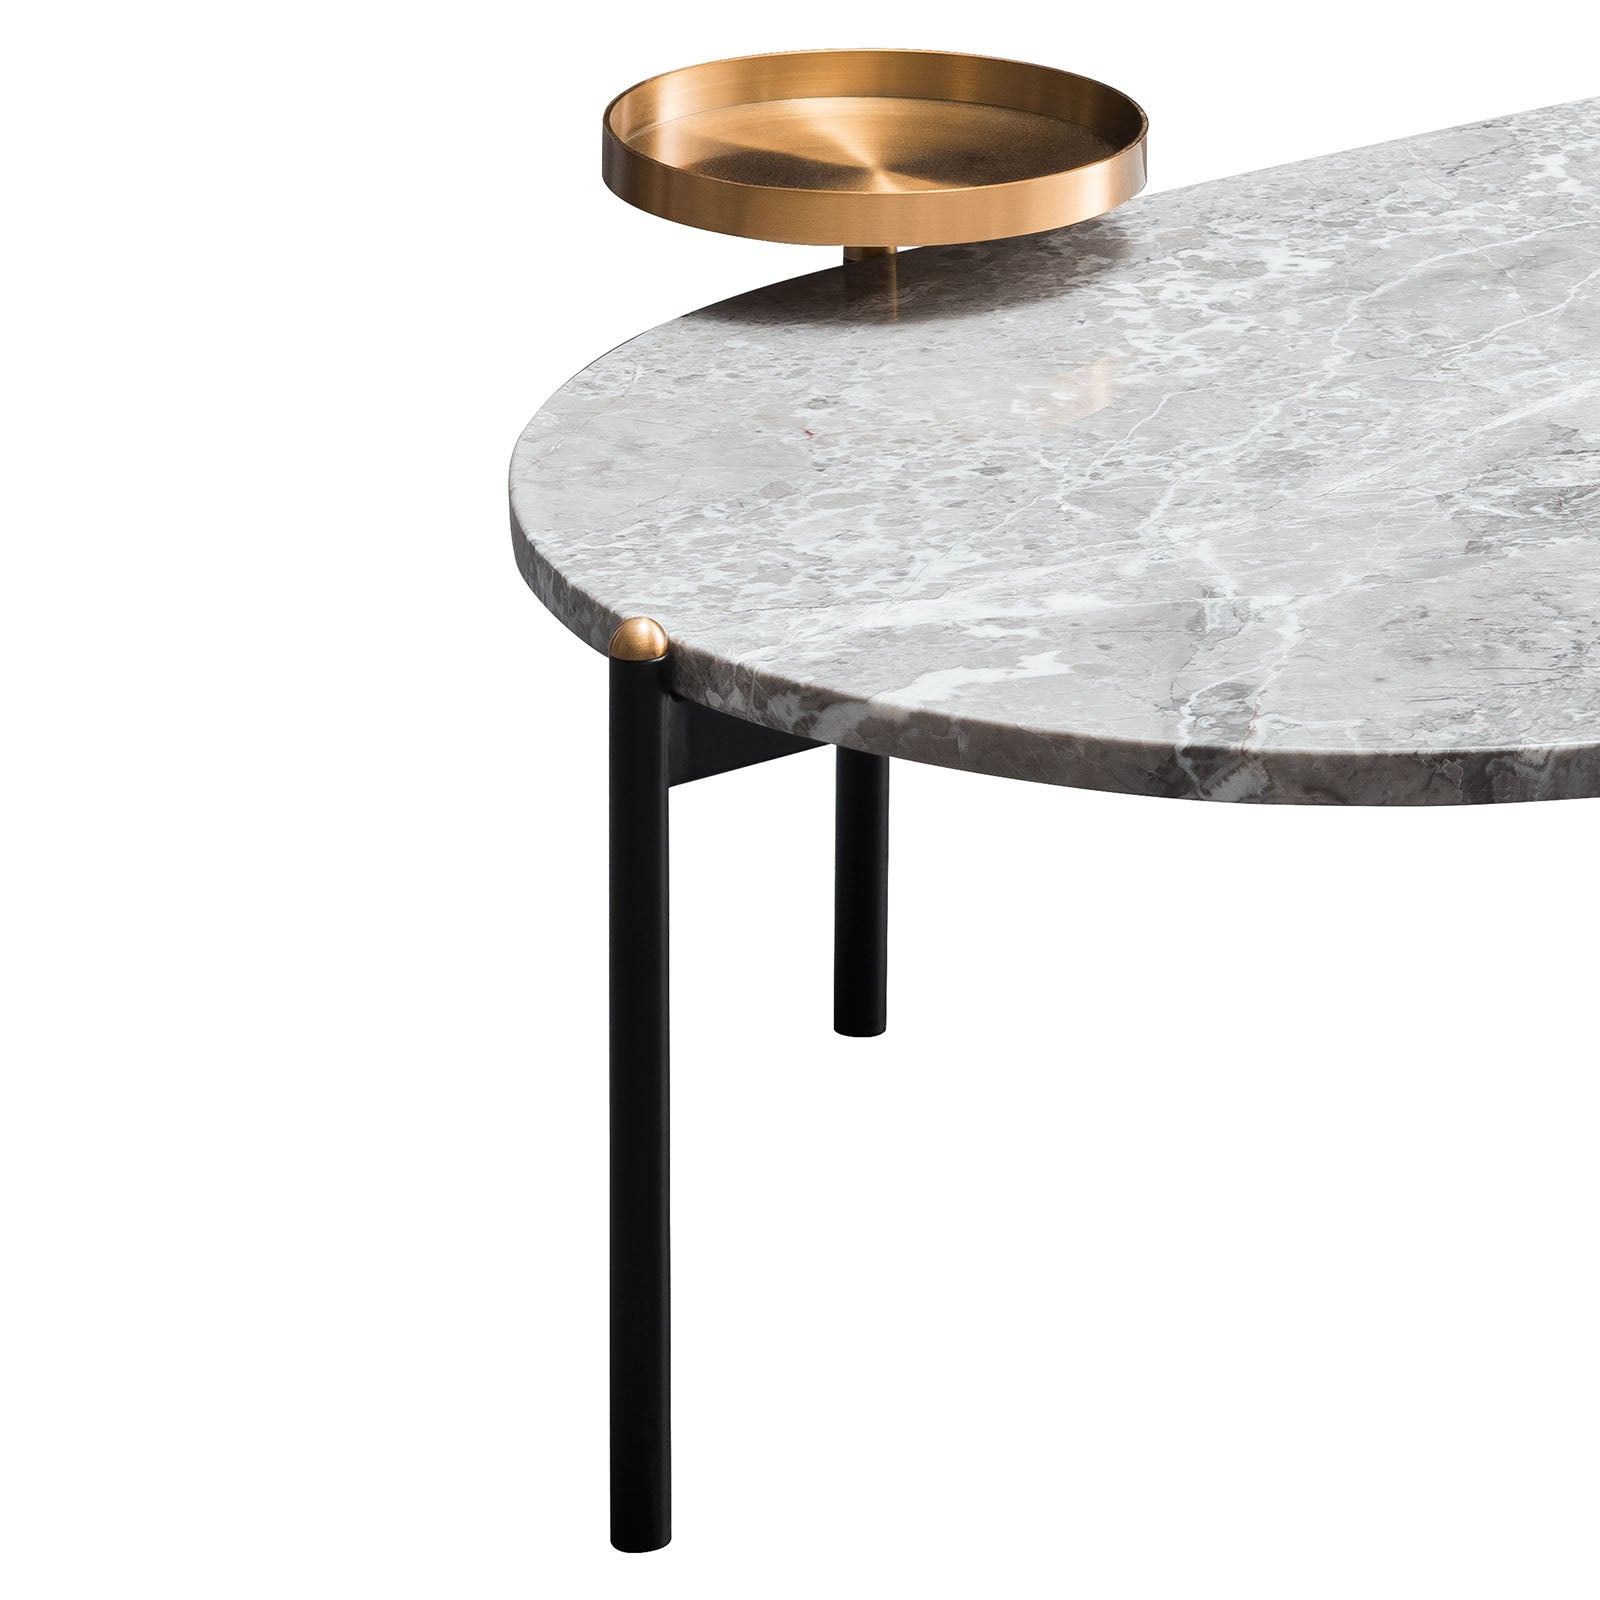 Pre-Order 60 days Delivery Como Natural marble table LT023B